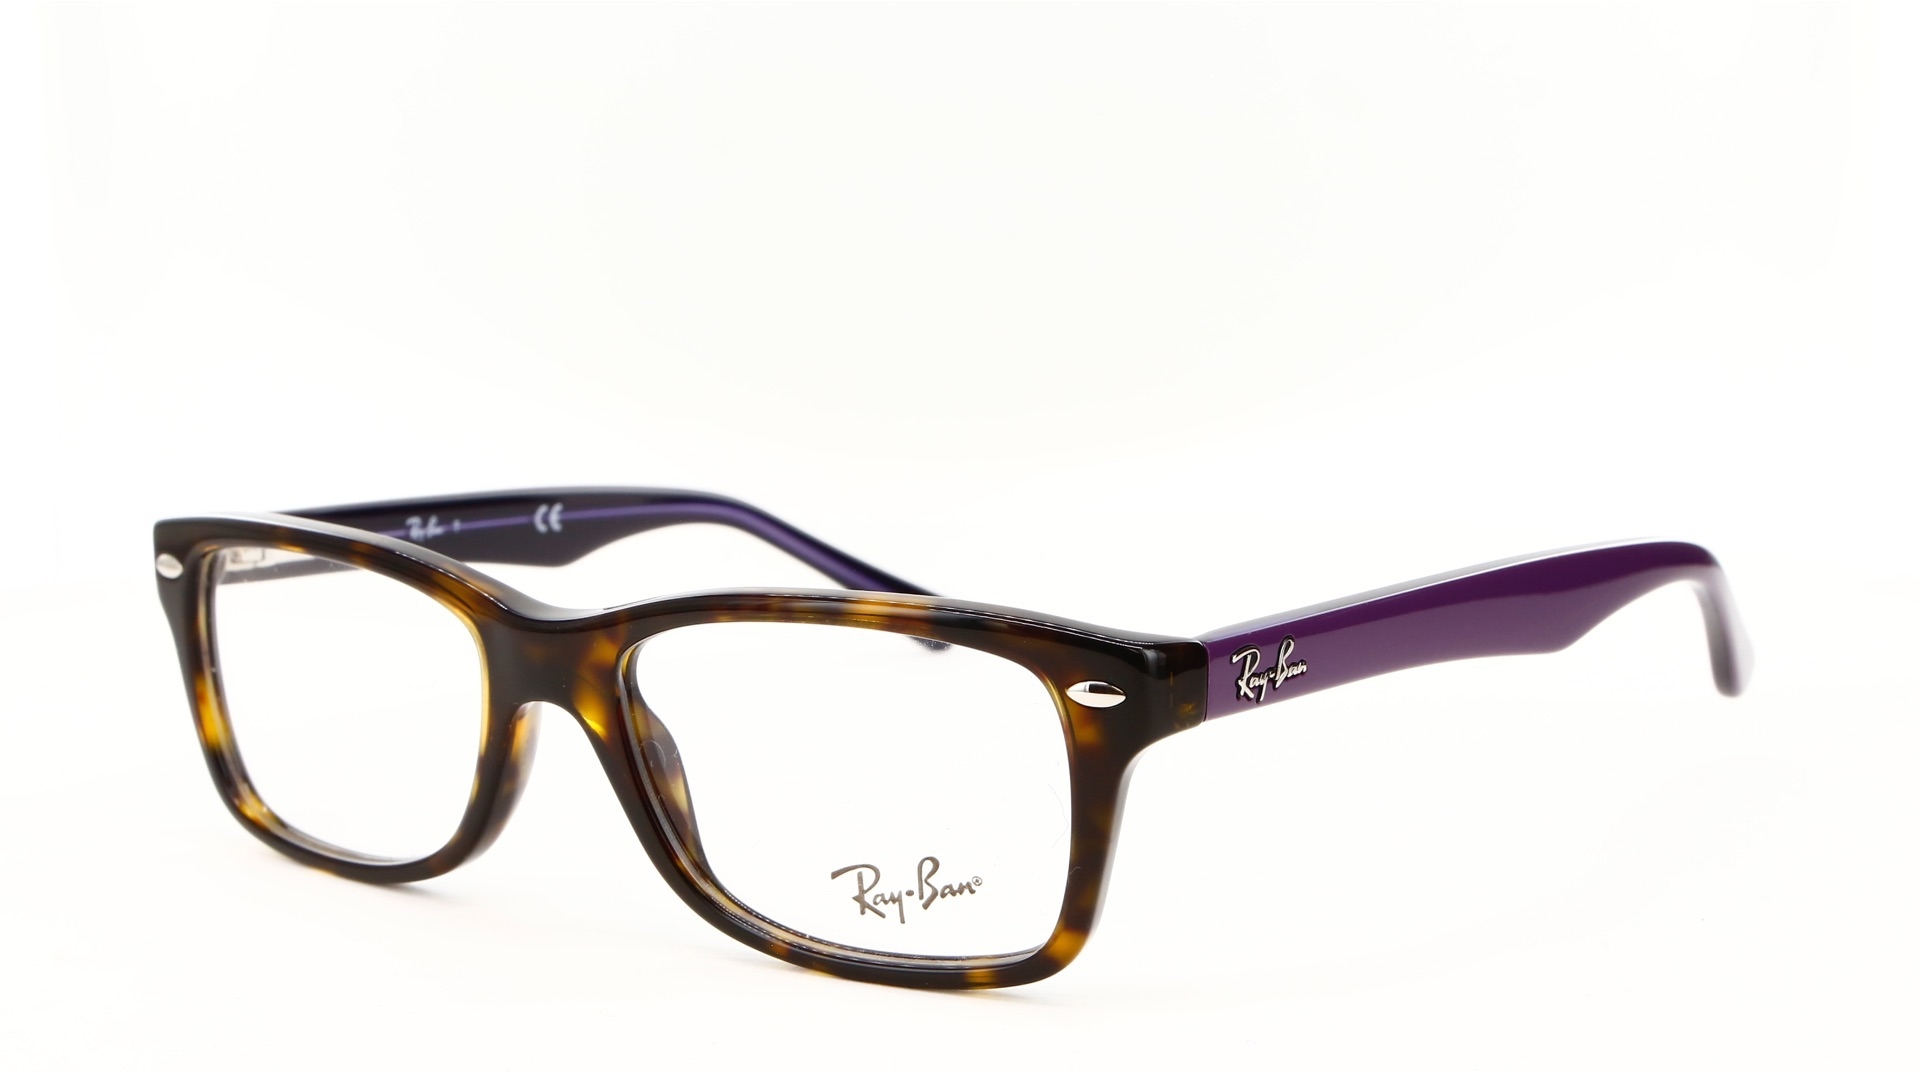 Ray-Ban - ref: 78779